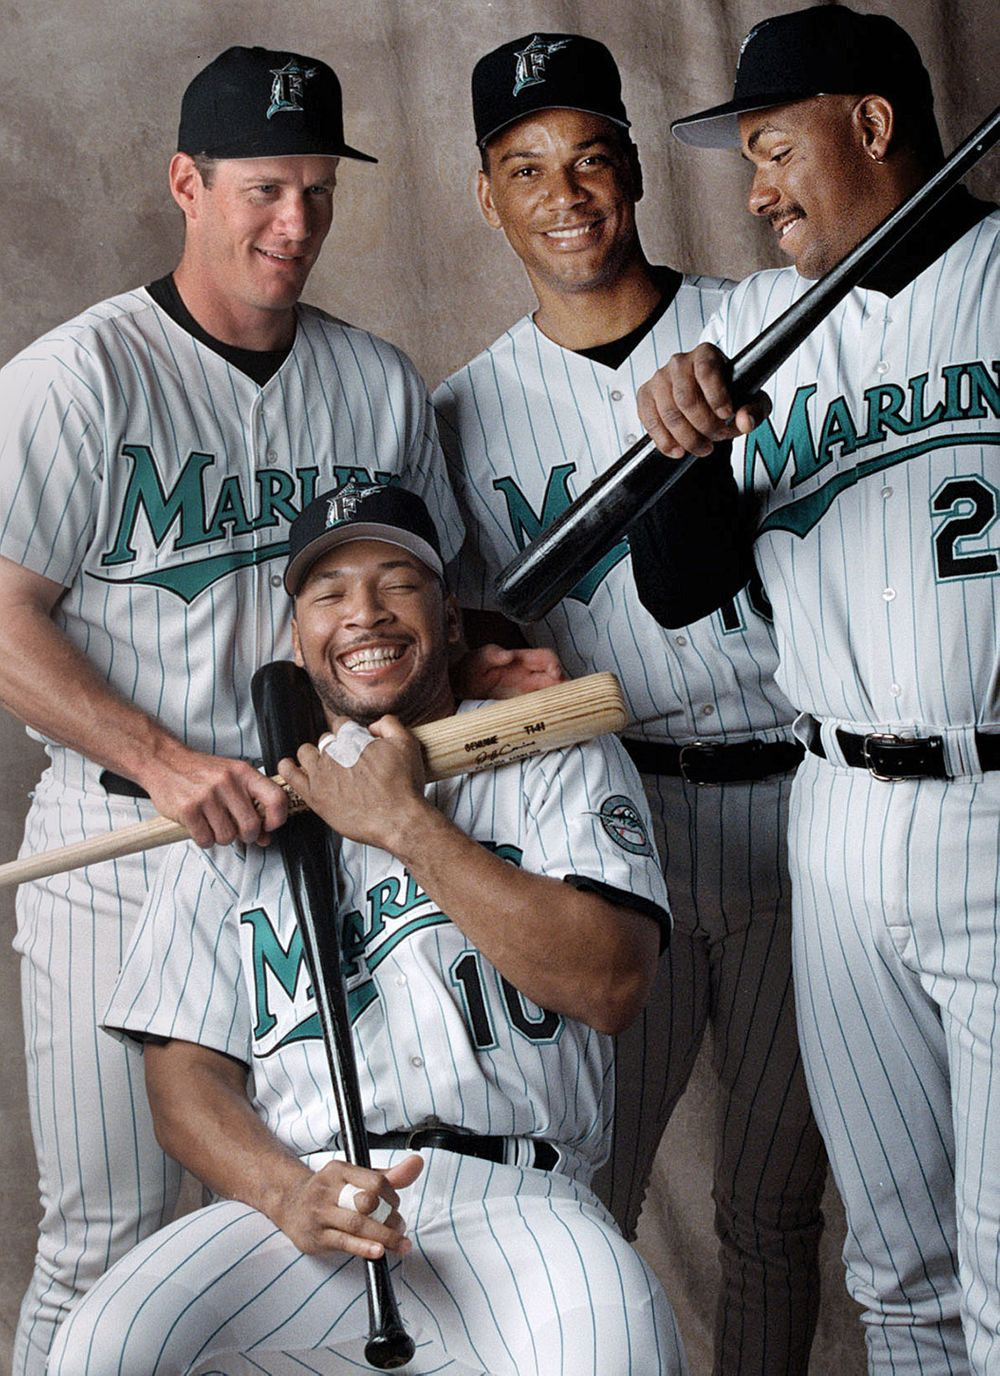 '97 Florida Marlins sluggers.